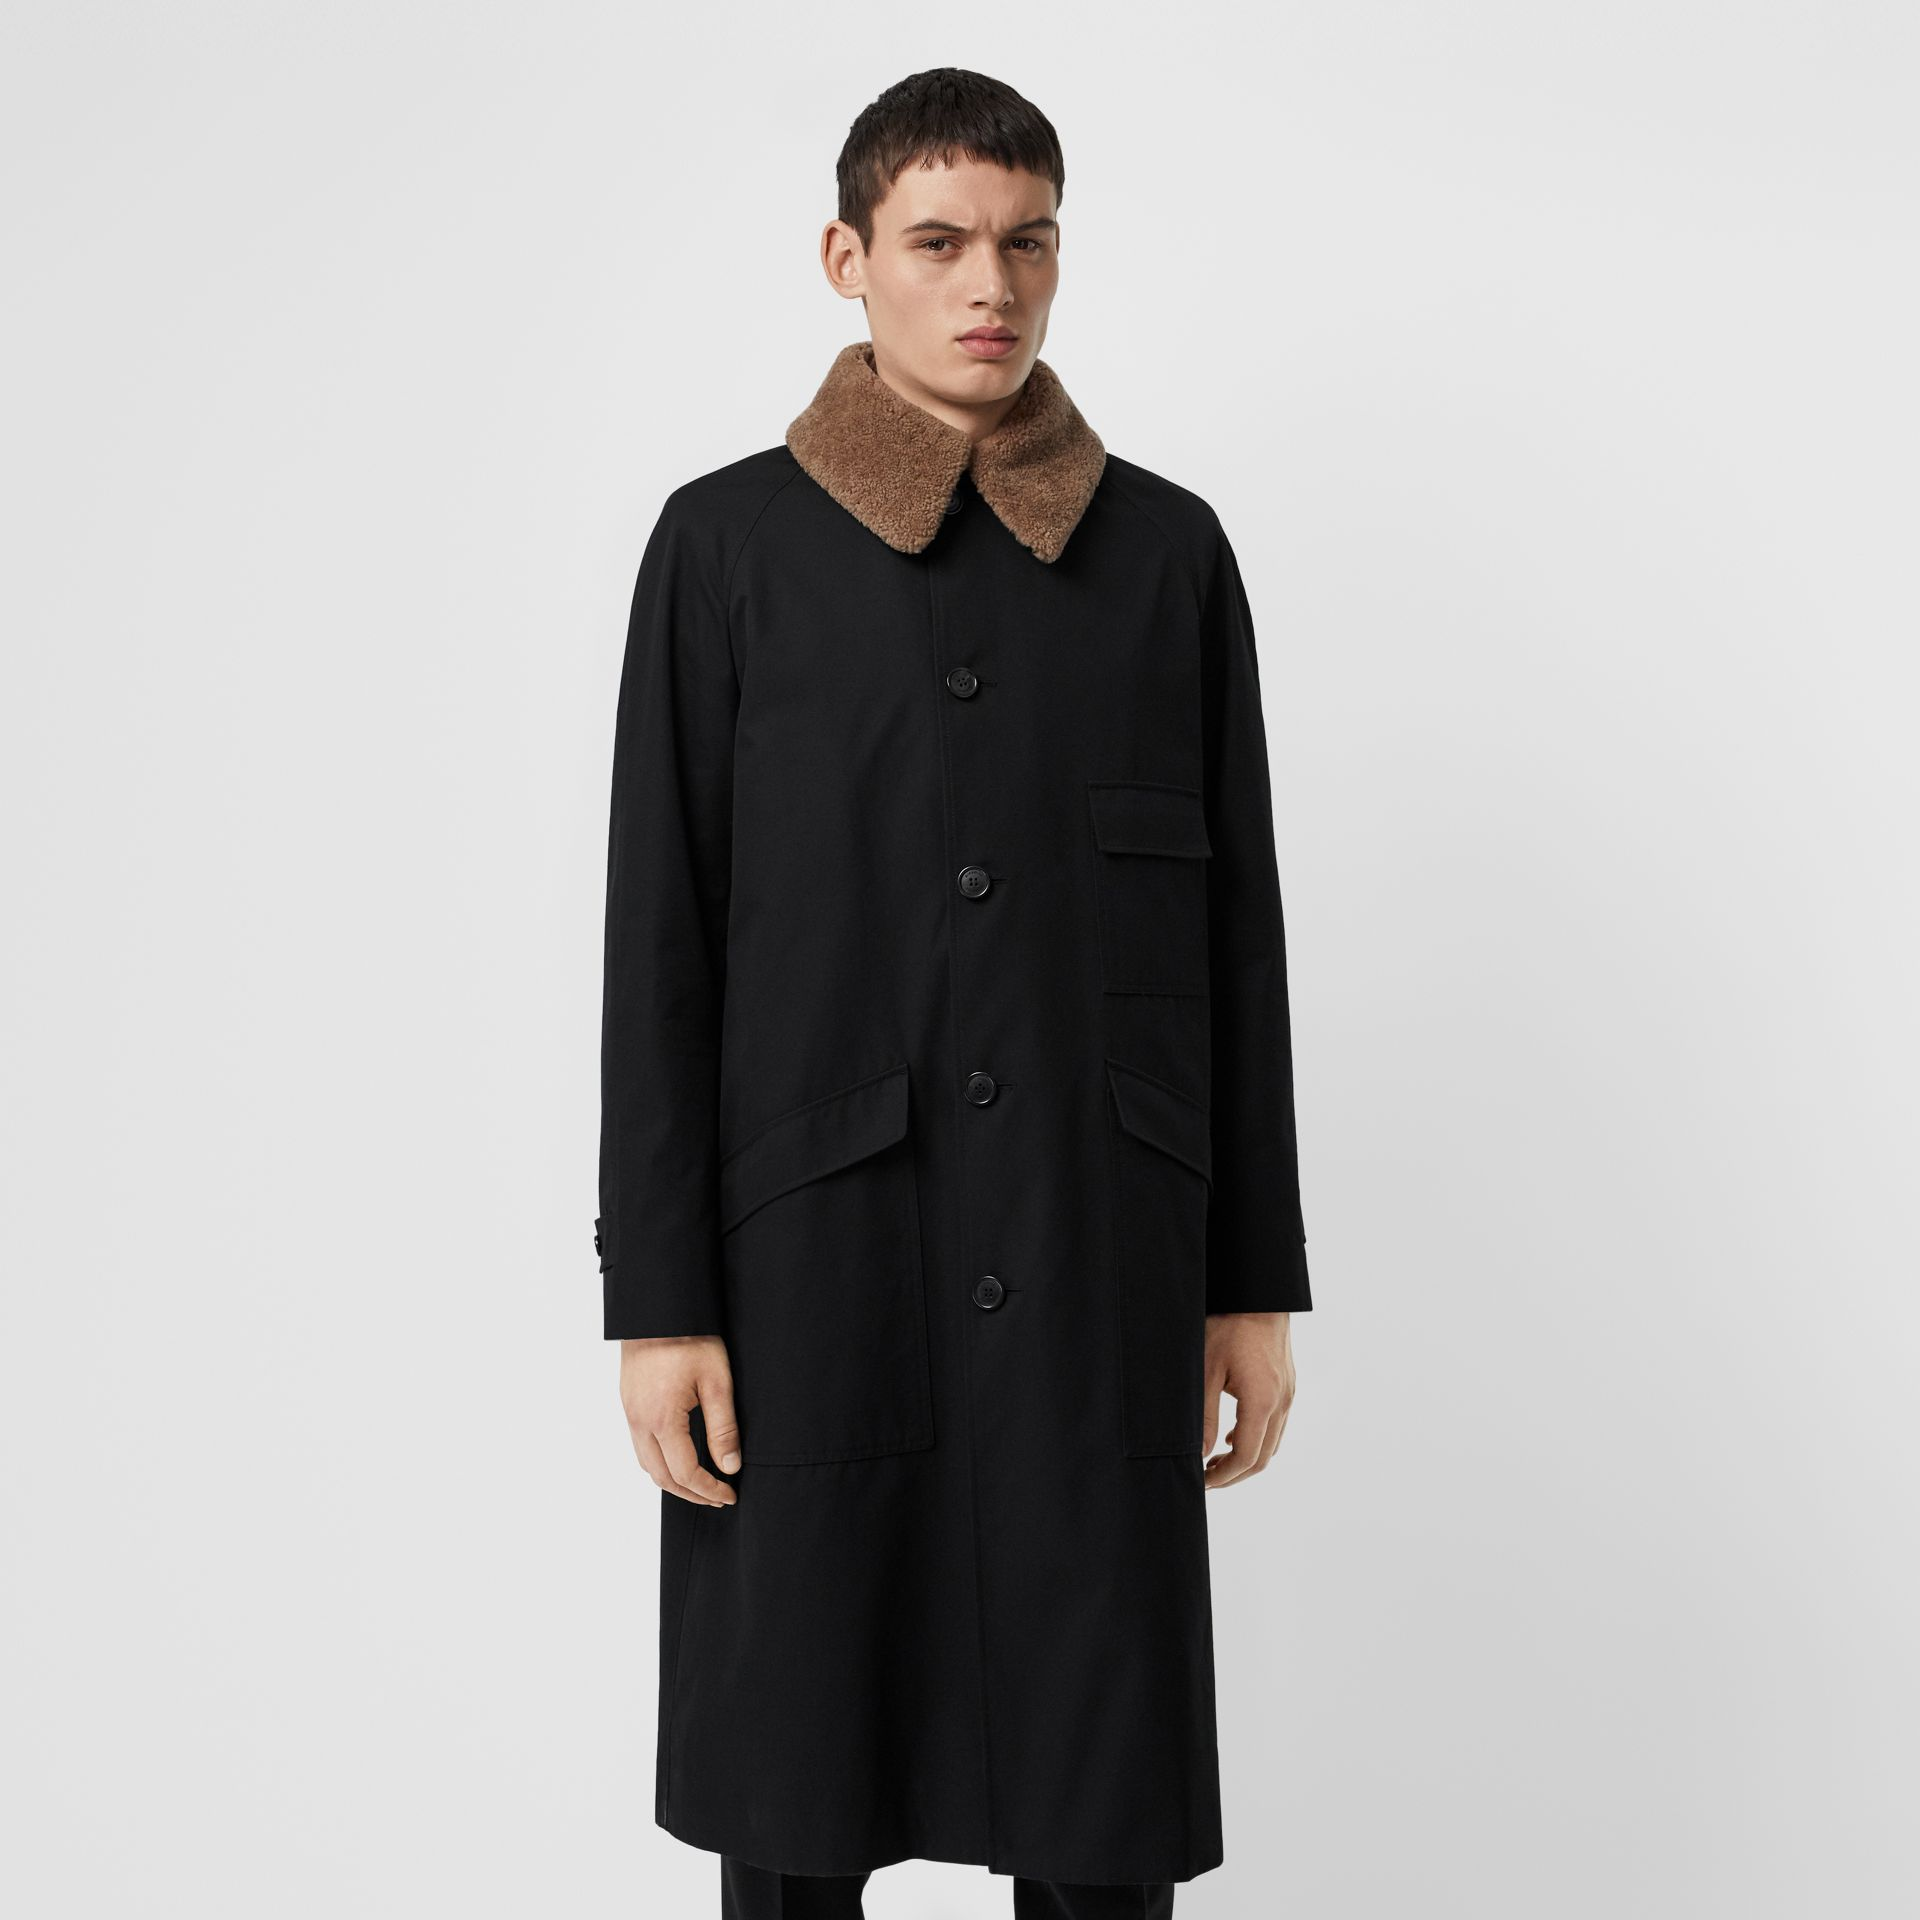 Contrast Shearling Collar Cotton Car Coat in Black - Men | Burberry - gallery image 6